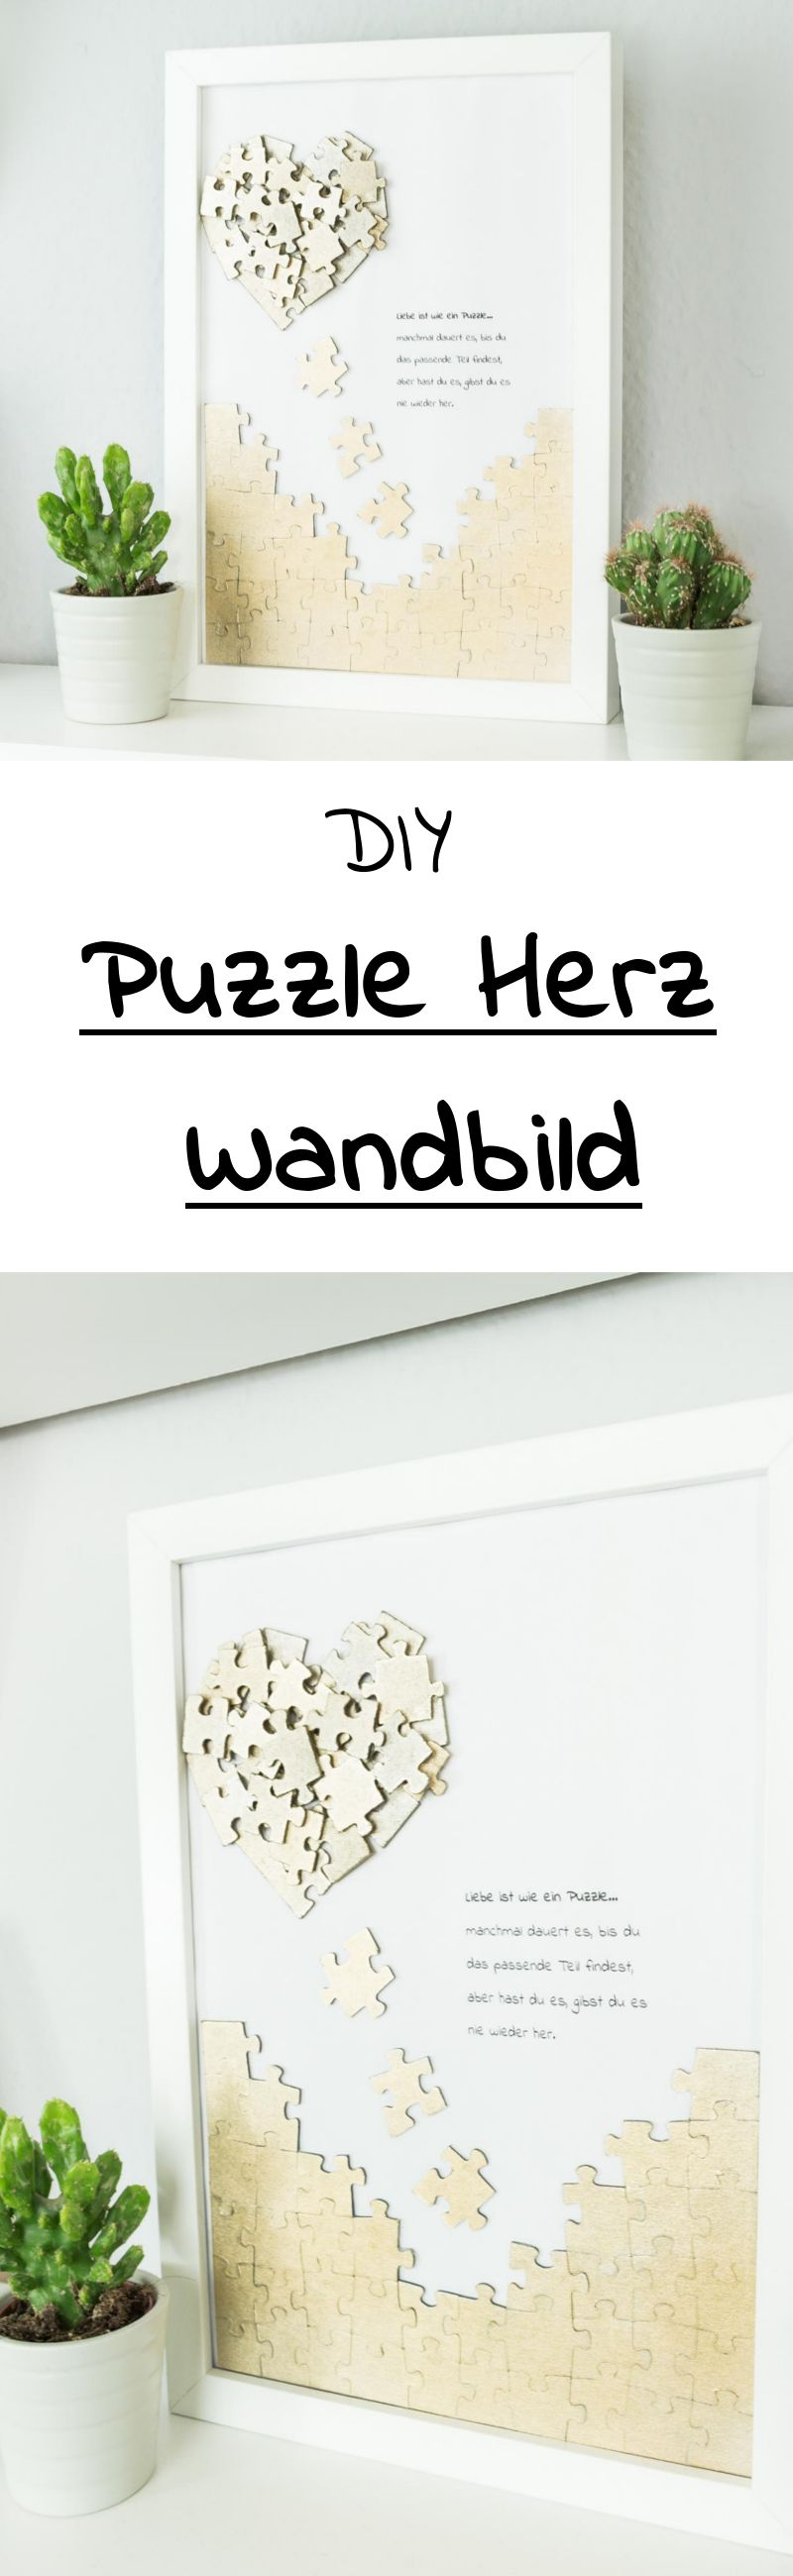 diy puzzle herz wandbild basteln diy idee zum valentinstag sch ne geschenkideen sch ne deko. Black Bedroom Furniture Sets. Home Design Ideas